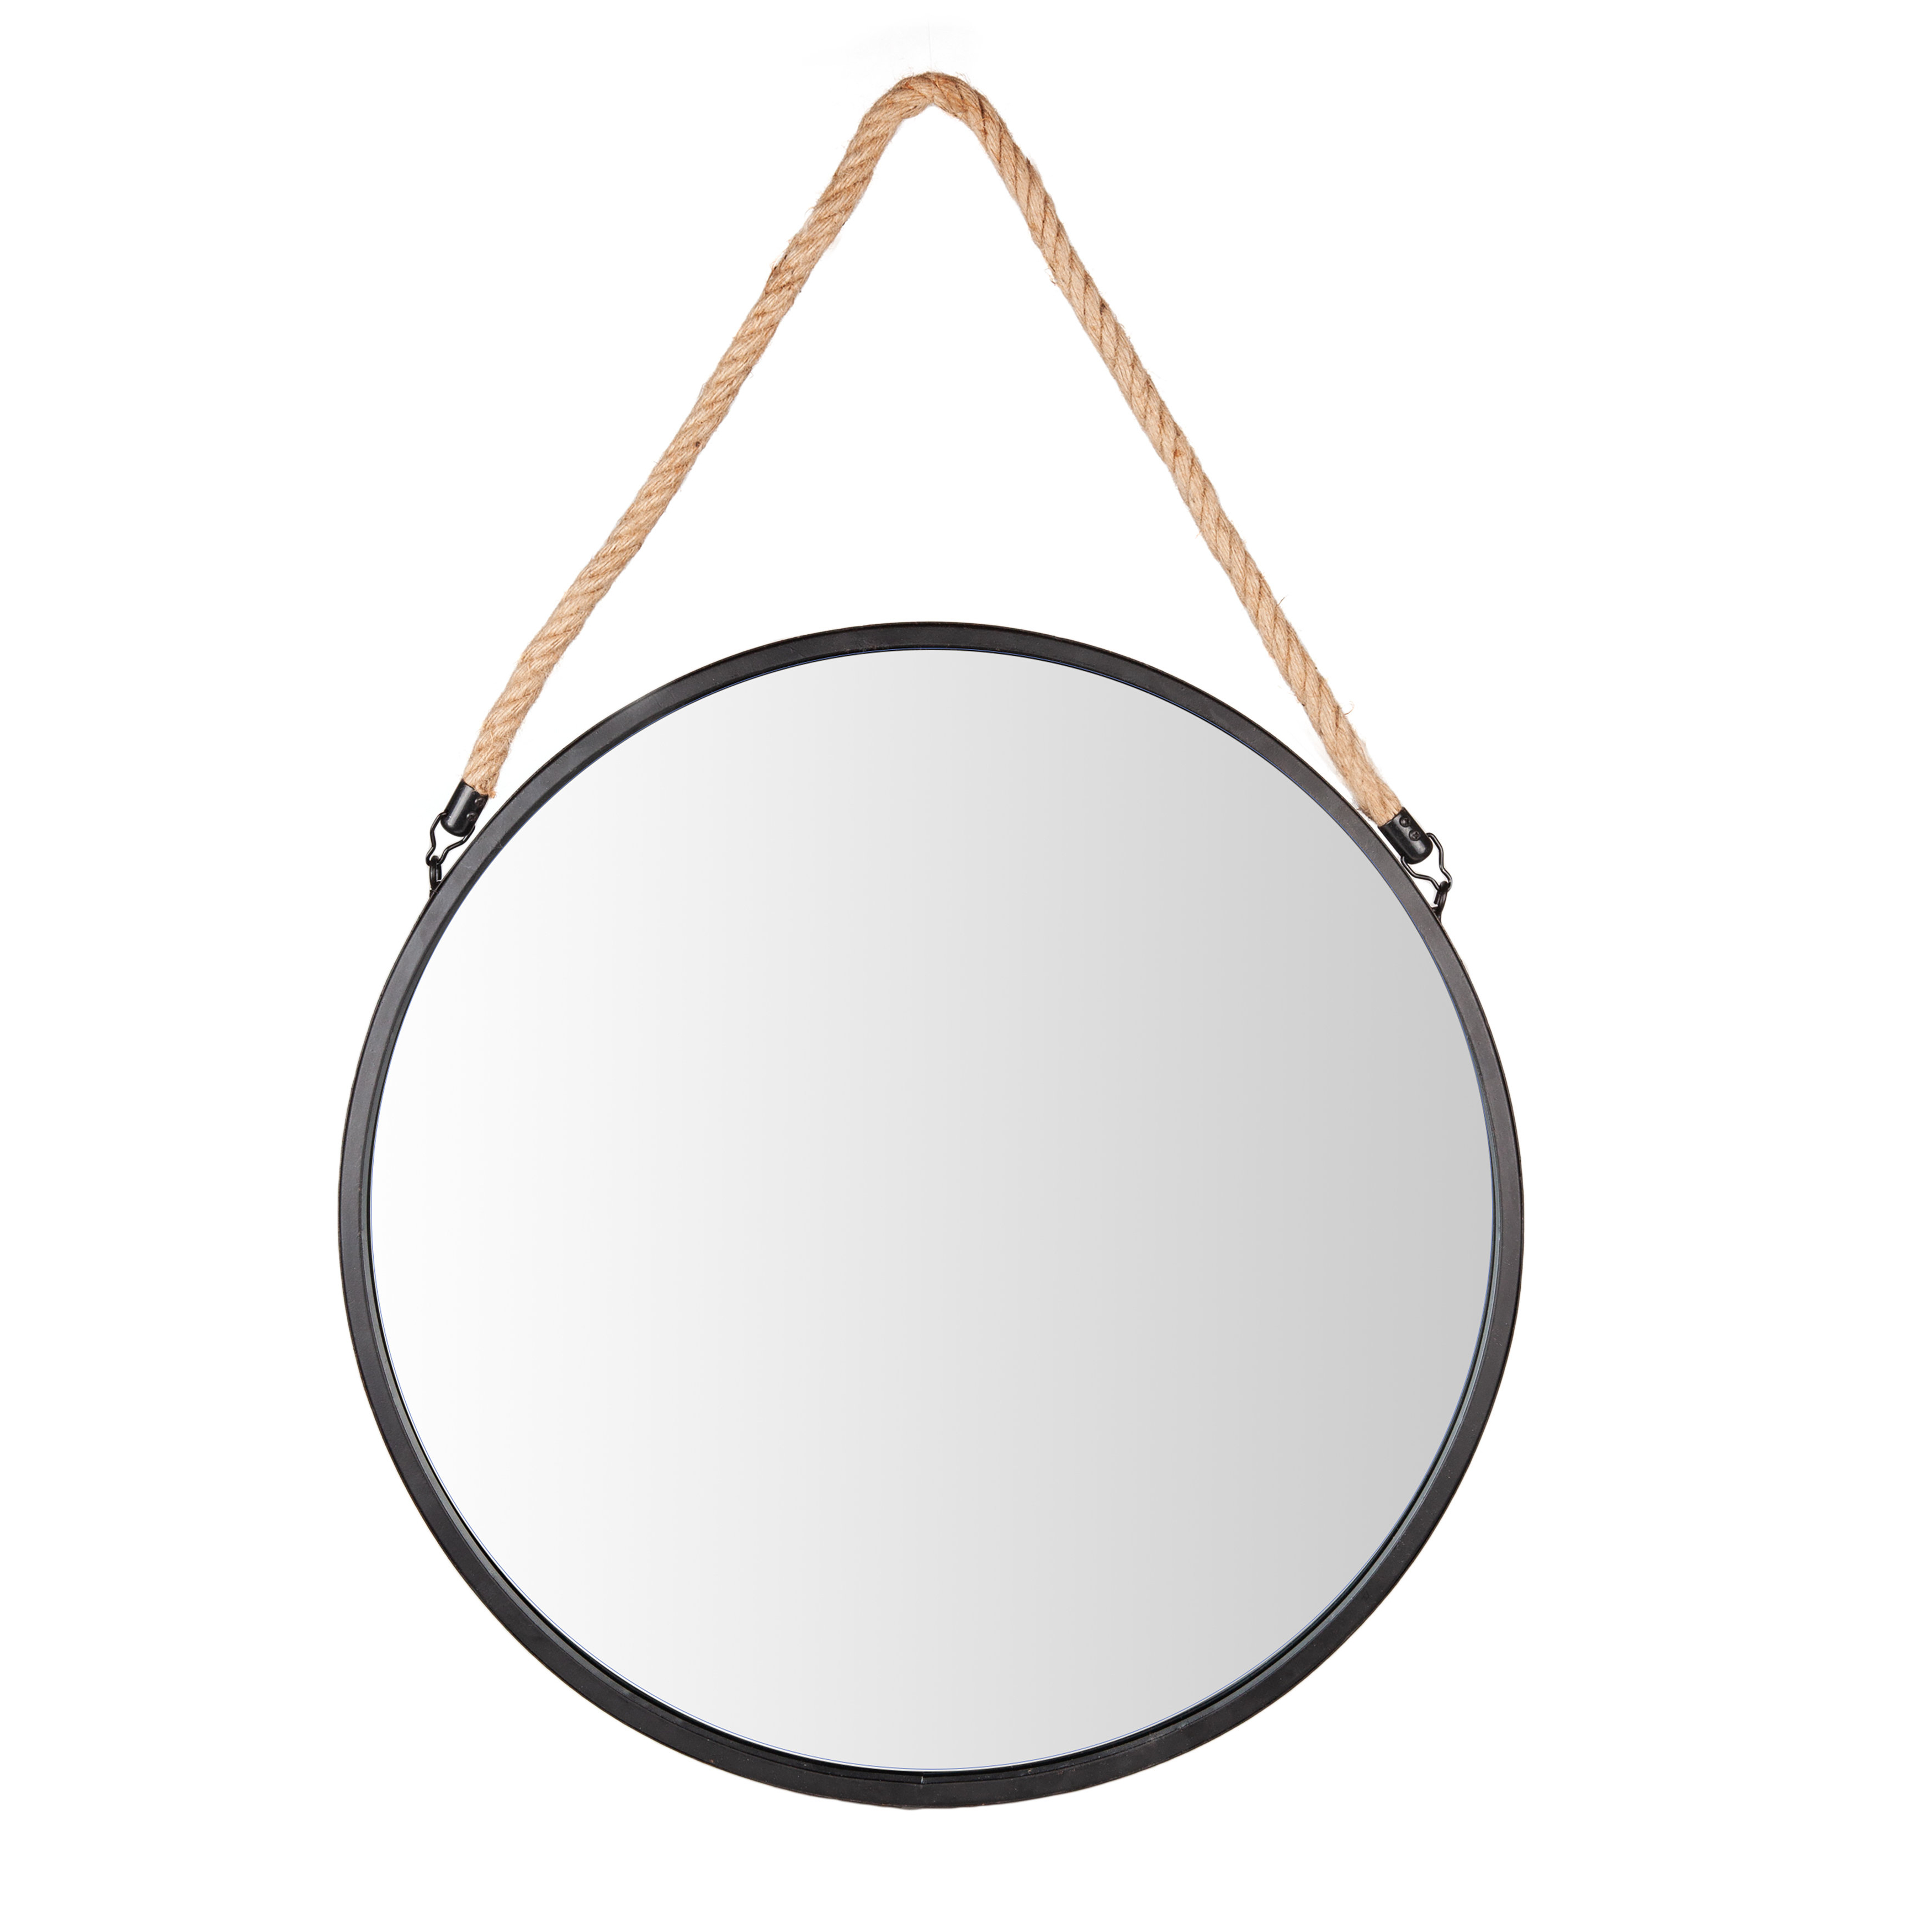 Popular Metal Wall Mirrors Throughout Rumfelt Decorative Round Metal Wall Mirror (View 14 of 20)